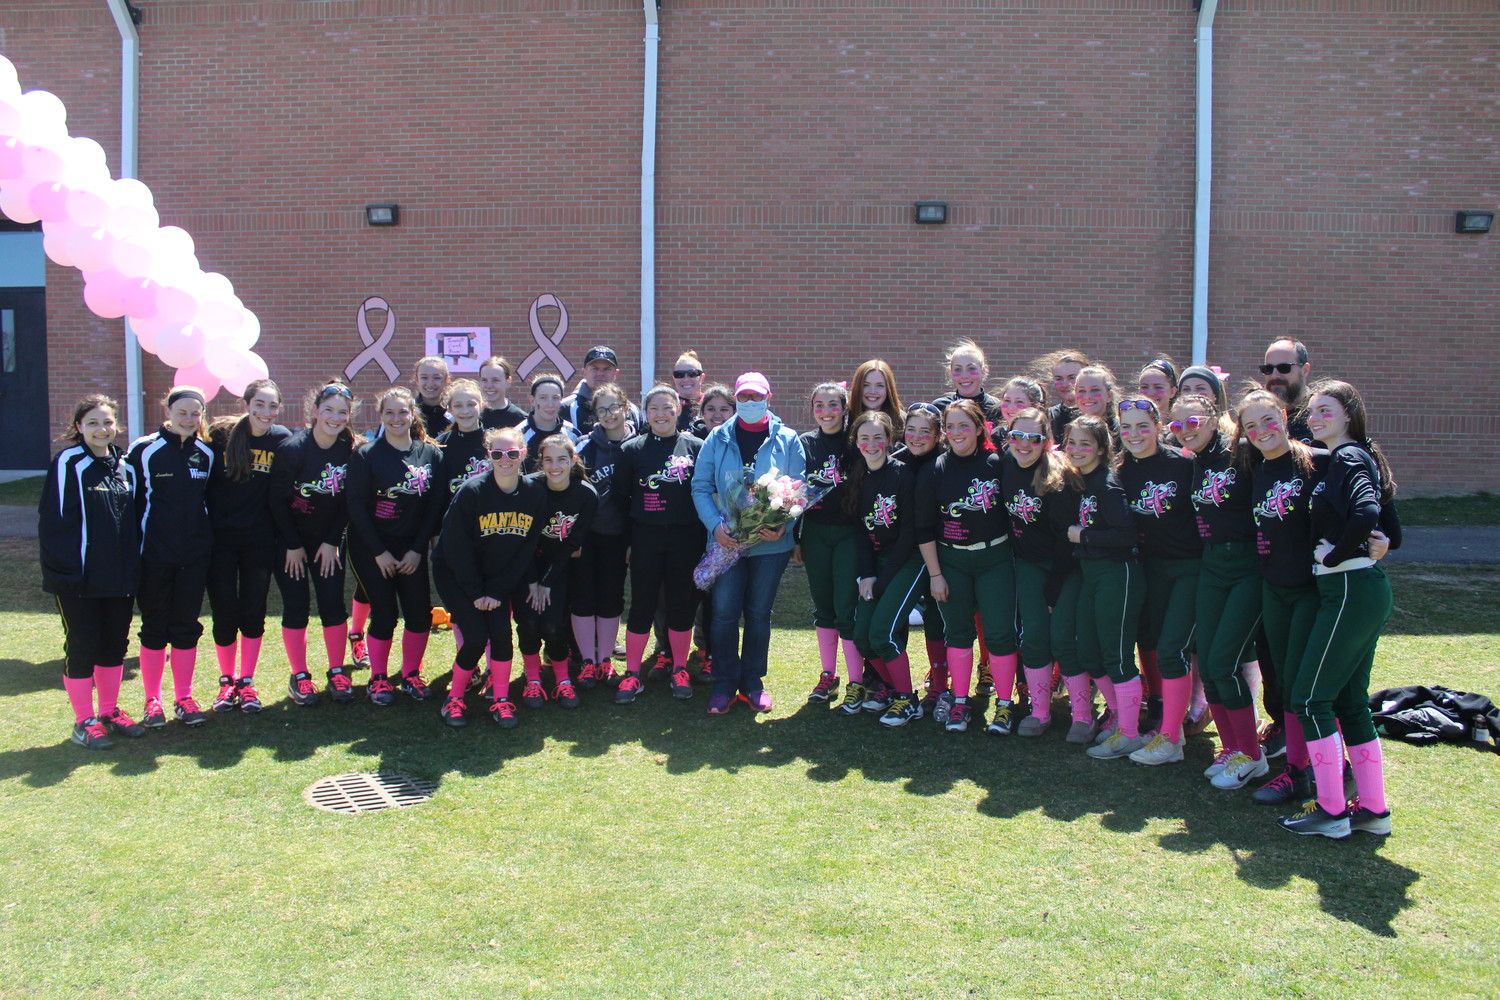 The Wantagh and Seaford High School softball teams joined forces to raise money for breast cancer in honor of local softball legend Kathy DelGais Butler, center.